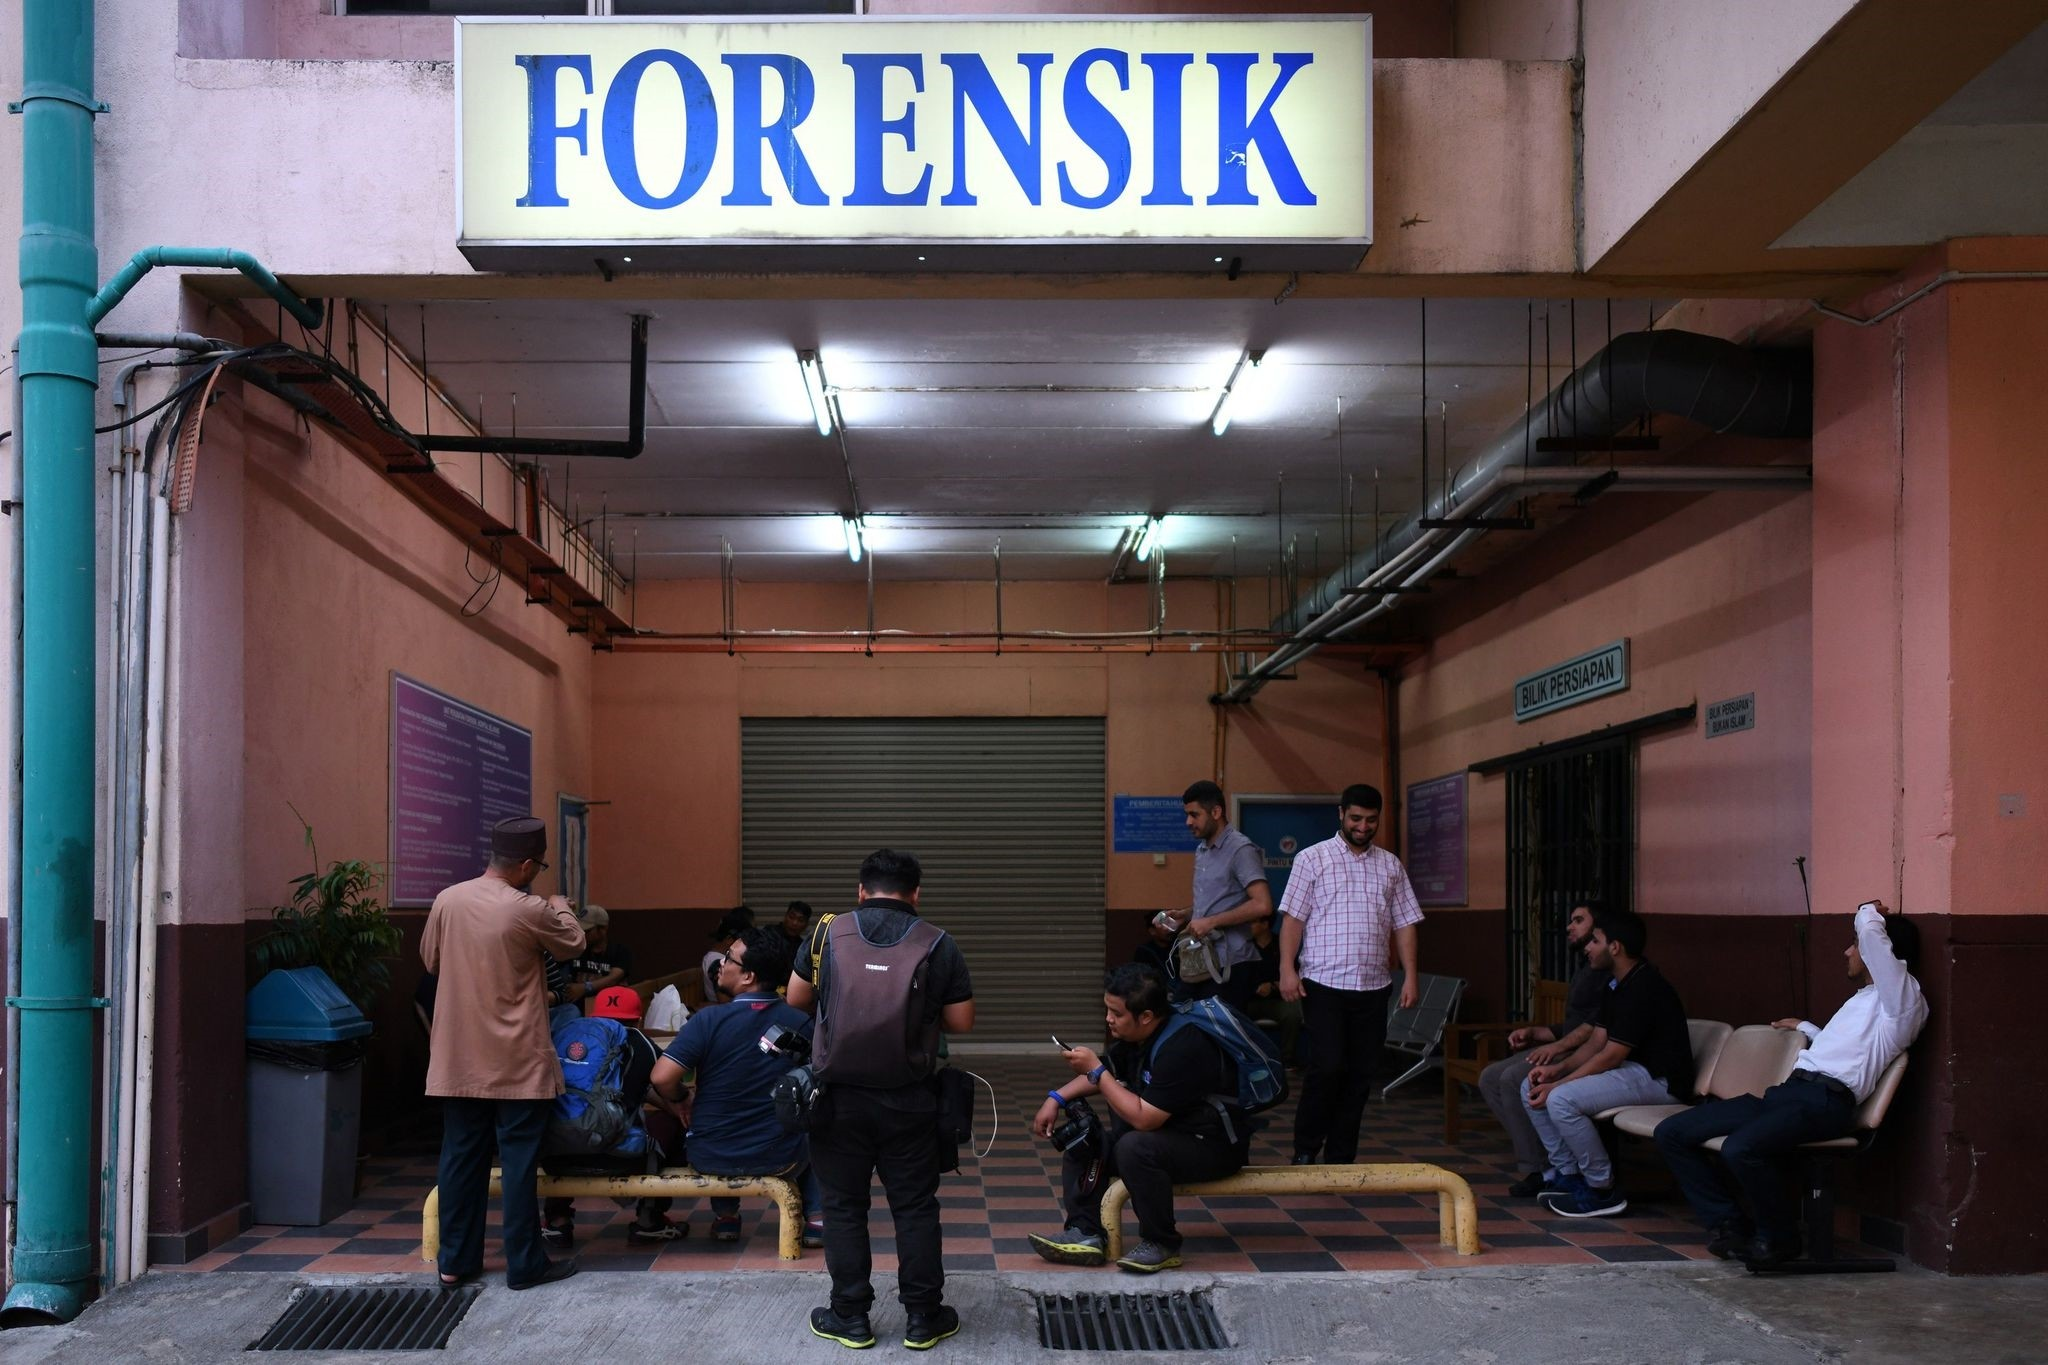 Members of the media wait outside the compound of the forensic wing of the Hospital Selayang, where the body of Palestinian professor Fadi Mohammad al-Batsh is being kept, in Kuala Lumpur on April 22, 2018. (AFP Photo)